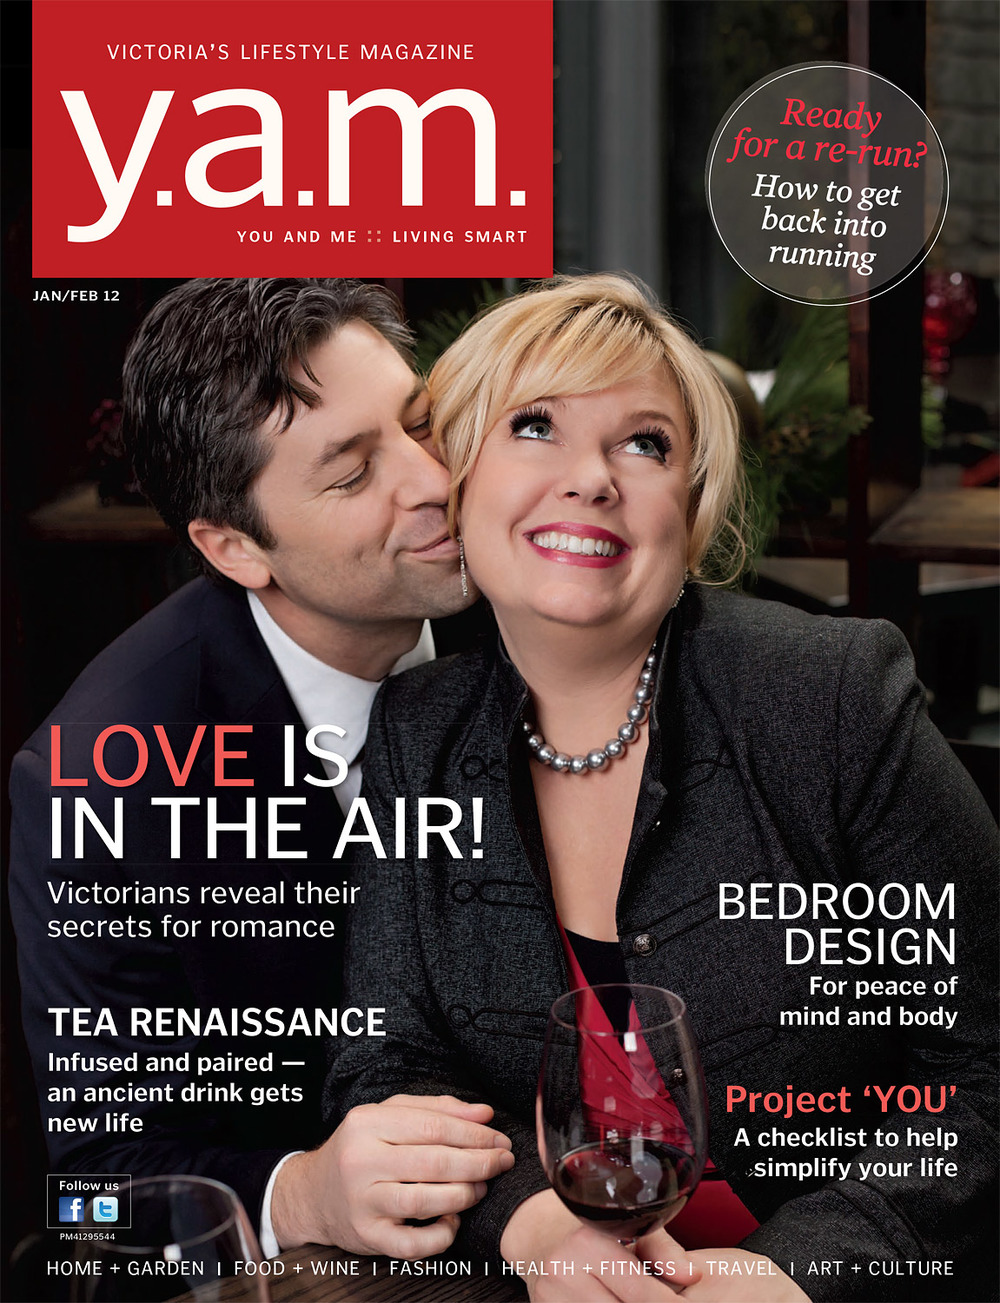 yam-feb-2012-cover.jpg